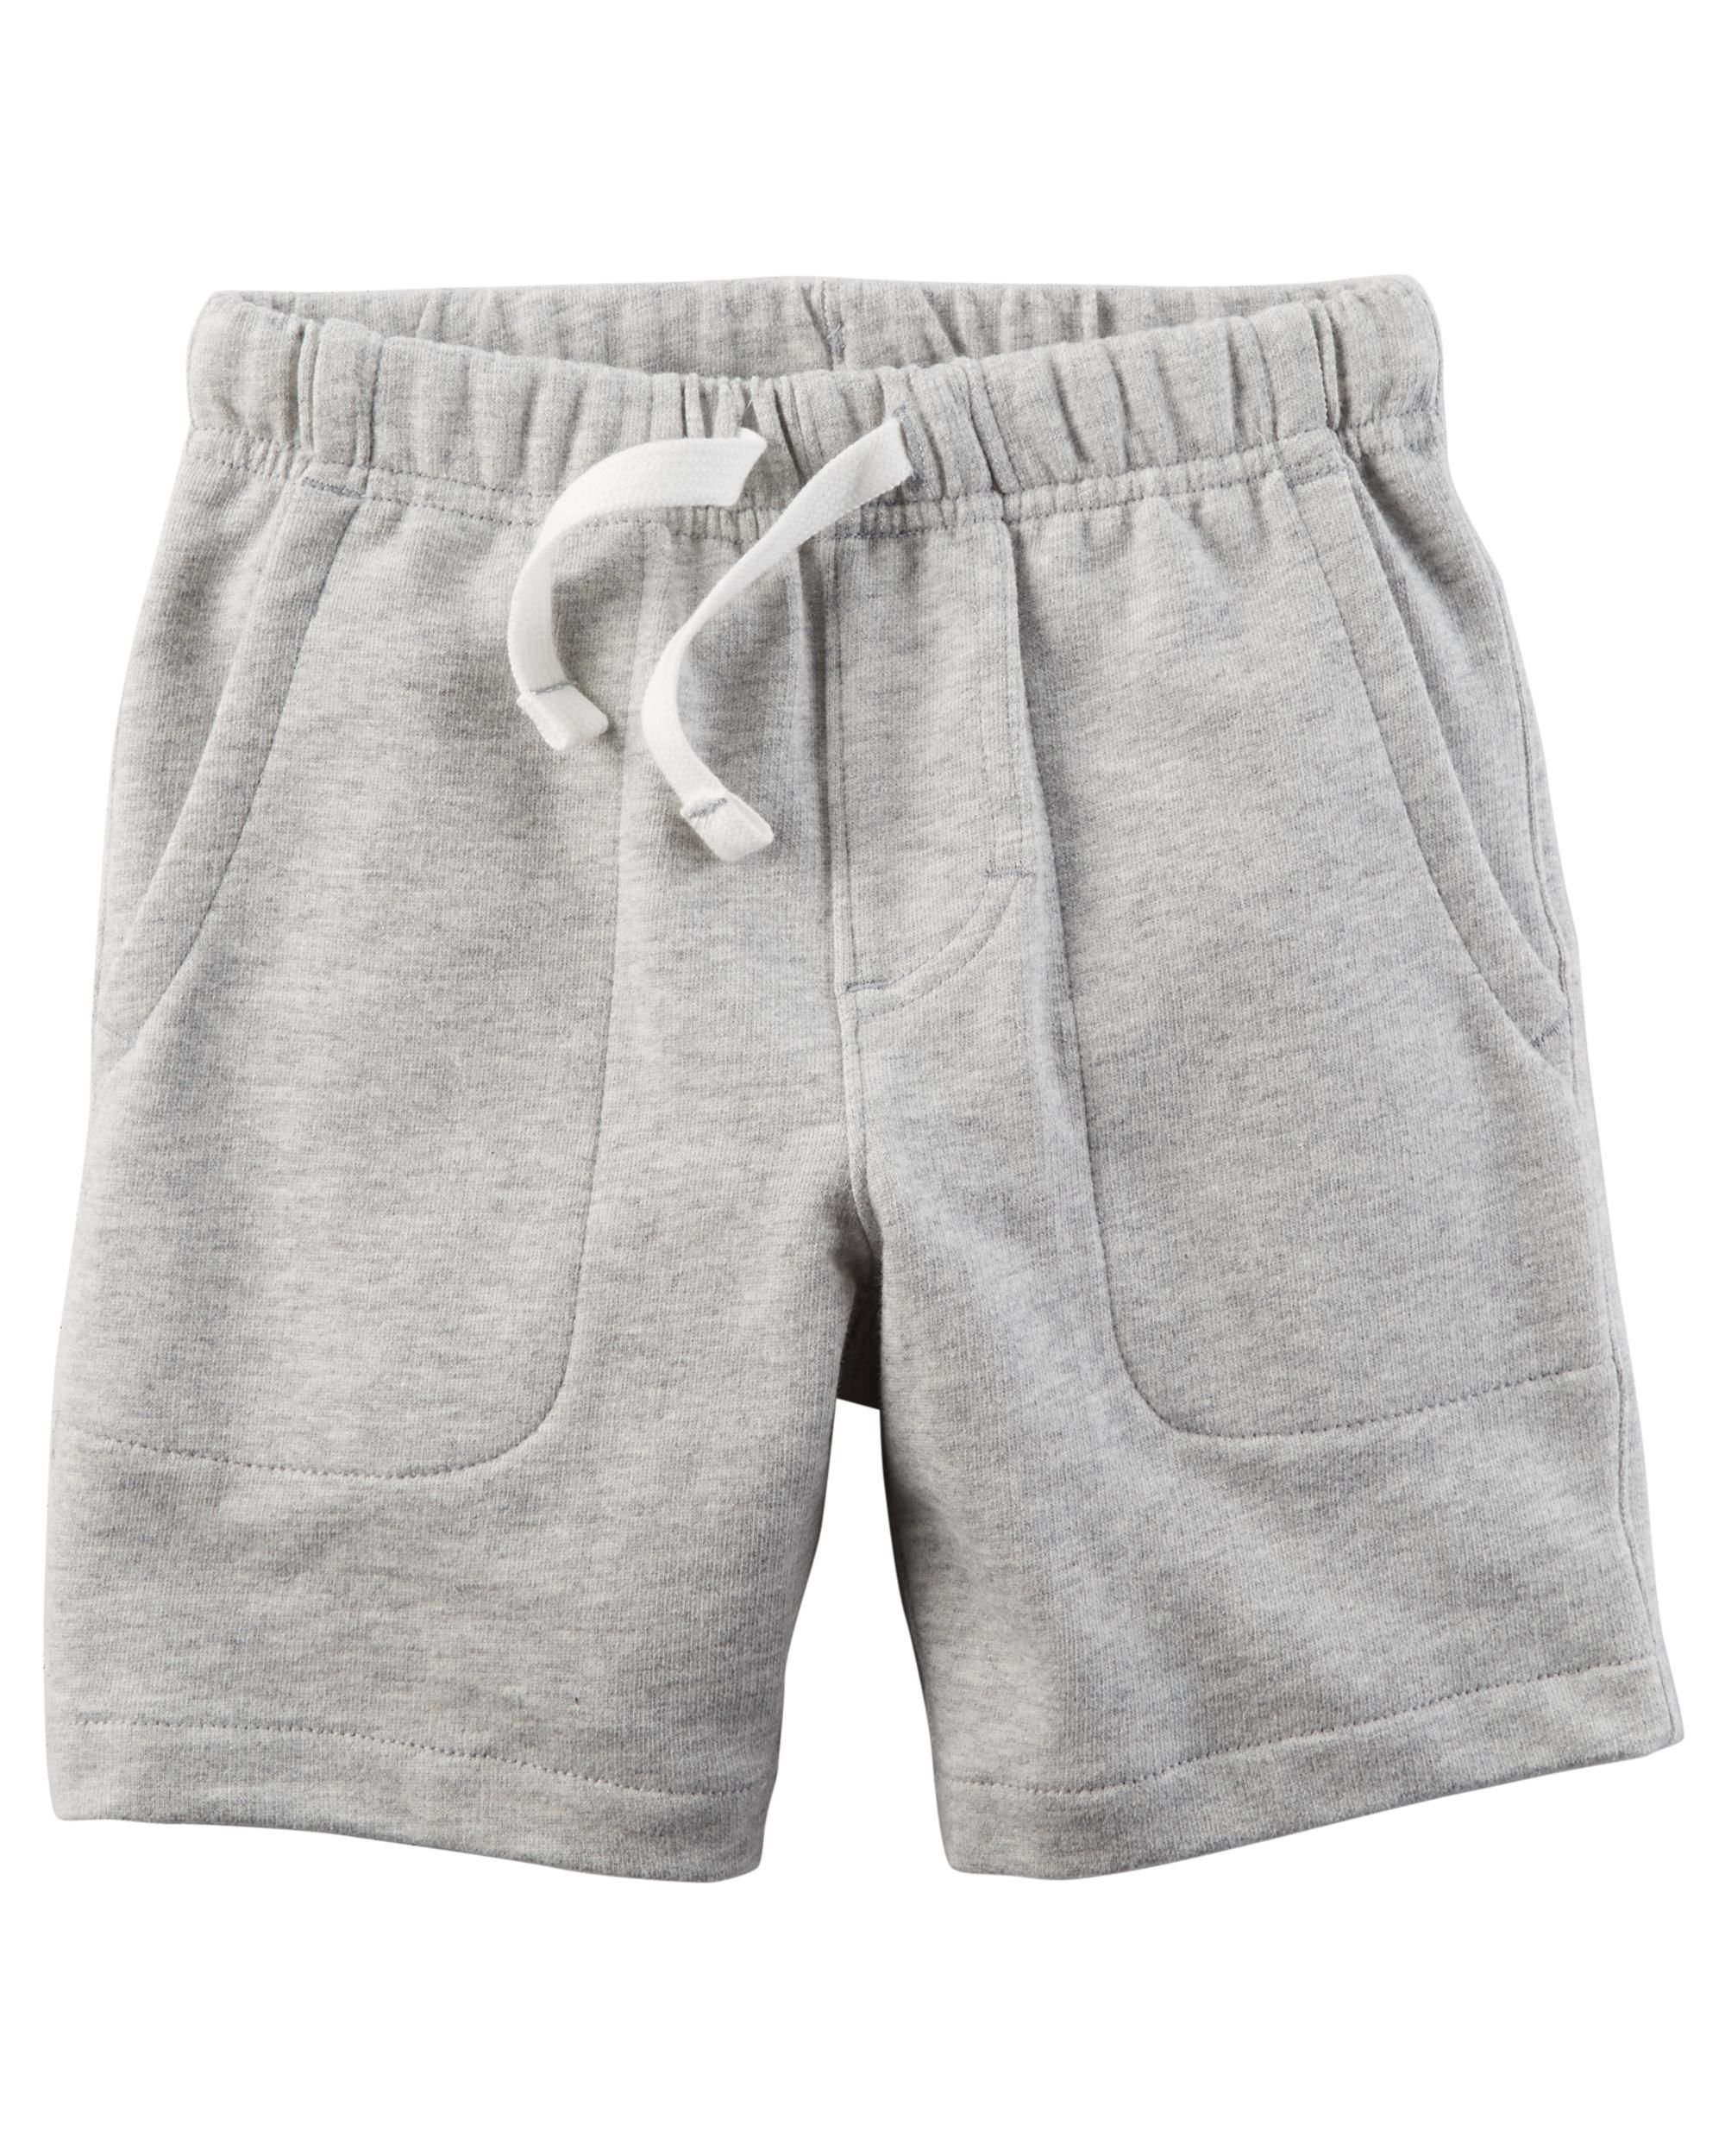 Carters Little Boys Pull-on French Terry Shorts - (9M, Gray)